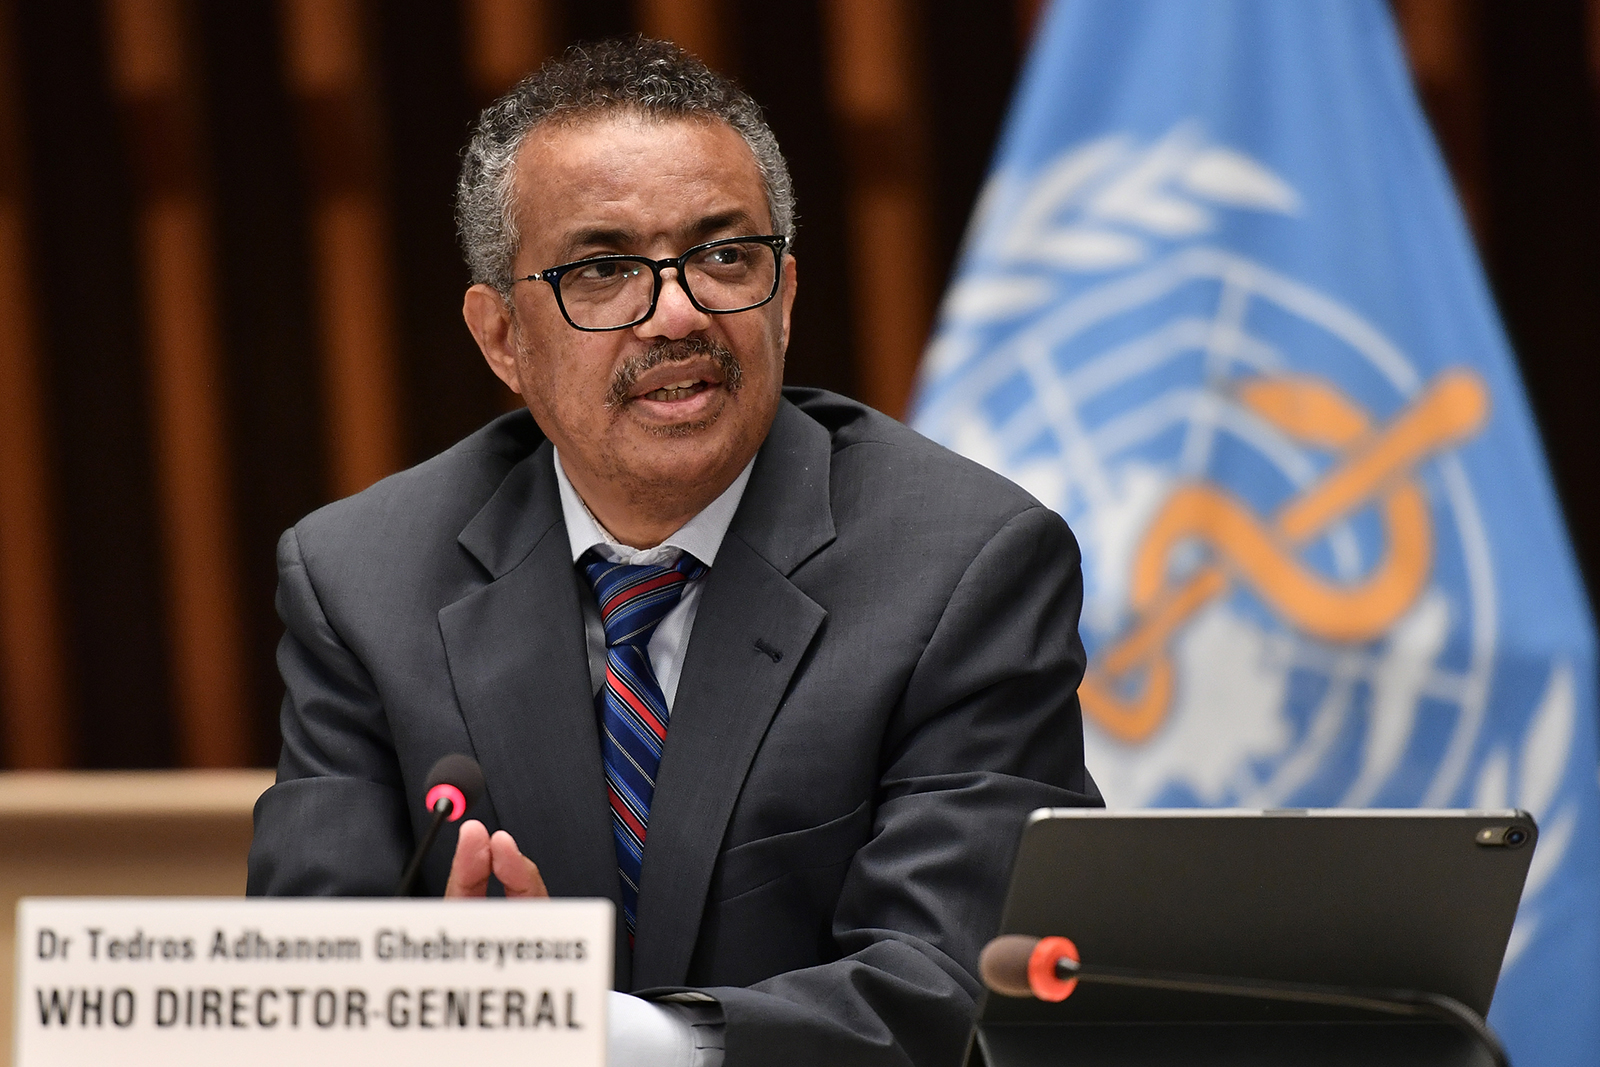 World Health Organization Director-General Tedros Adhanom Ghebreyesus attends a news conference at WHO headquarters in Geneva, on July 3, 2020.